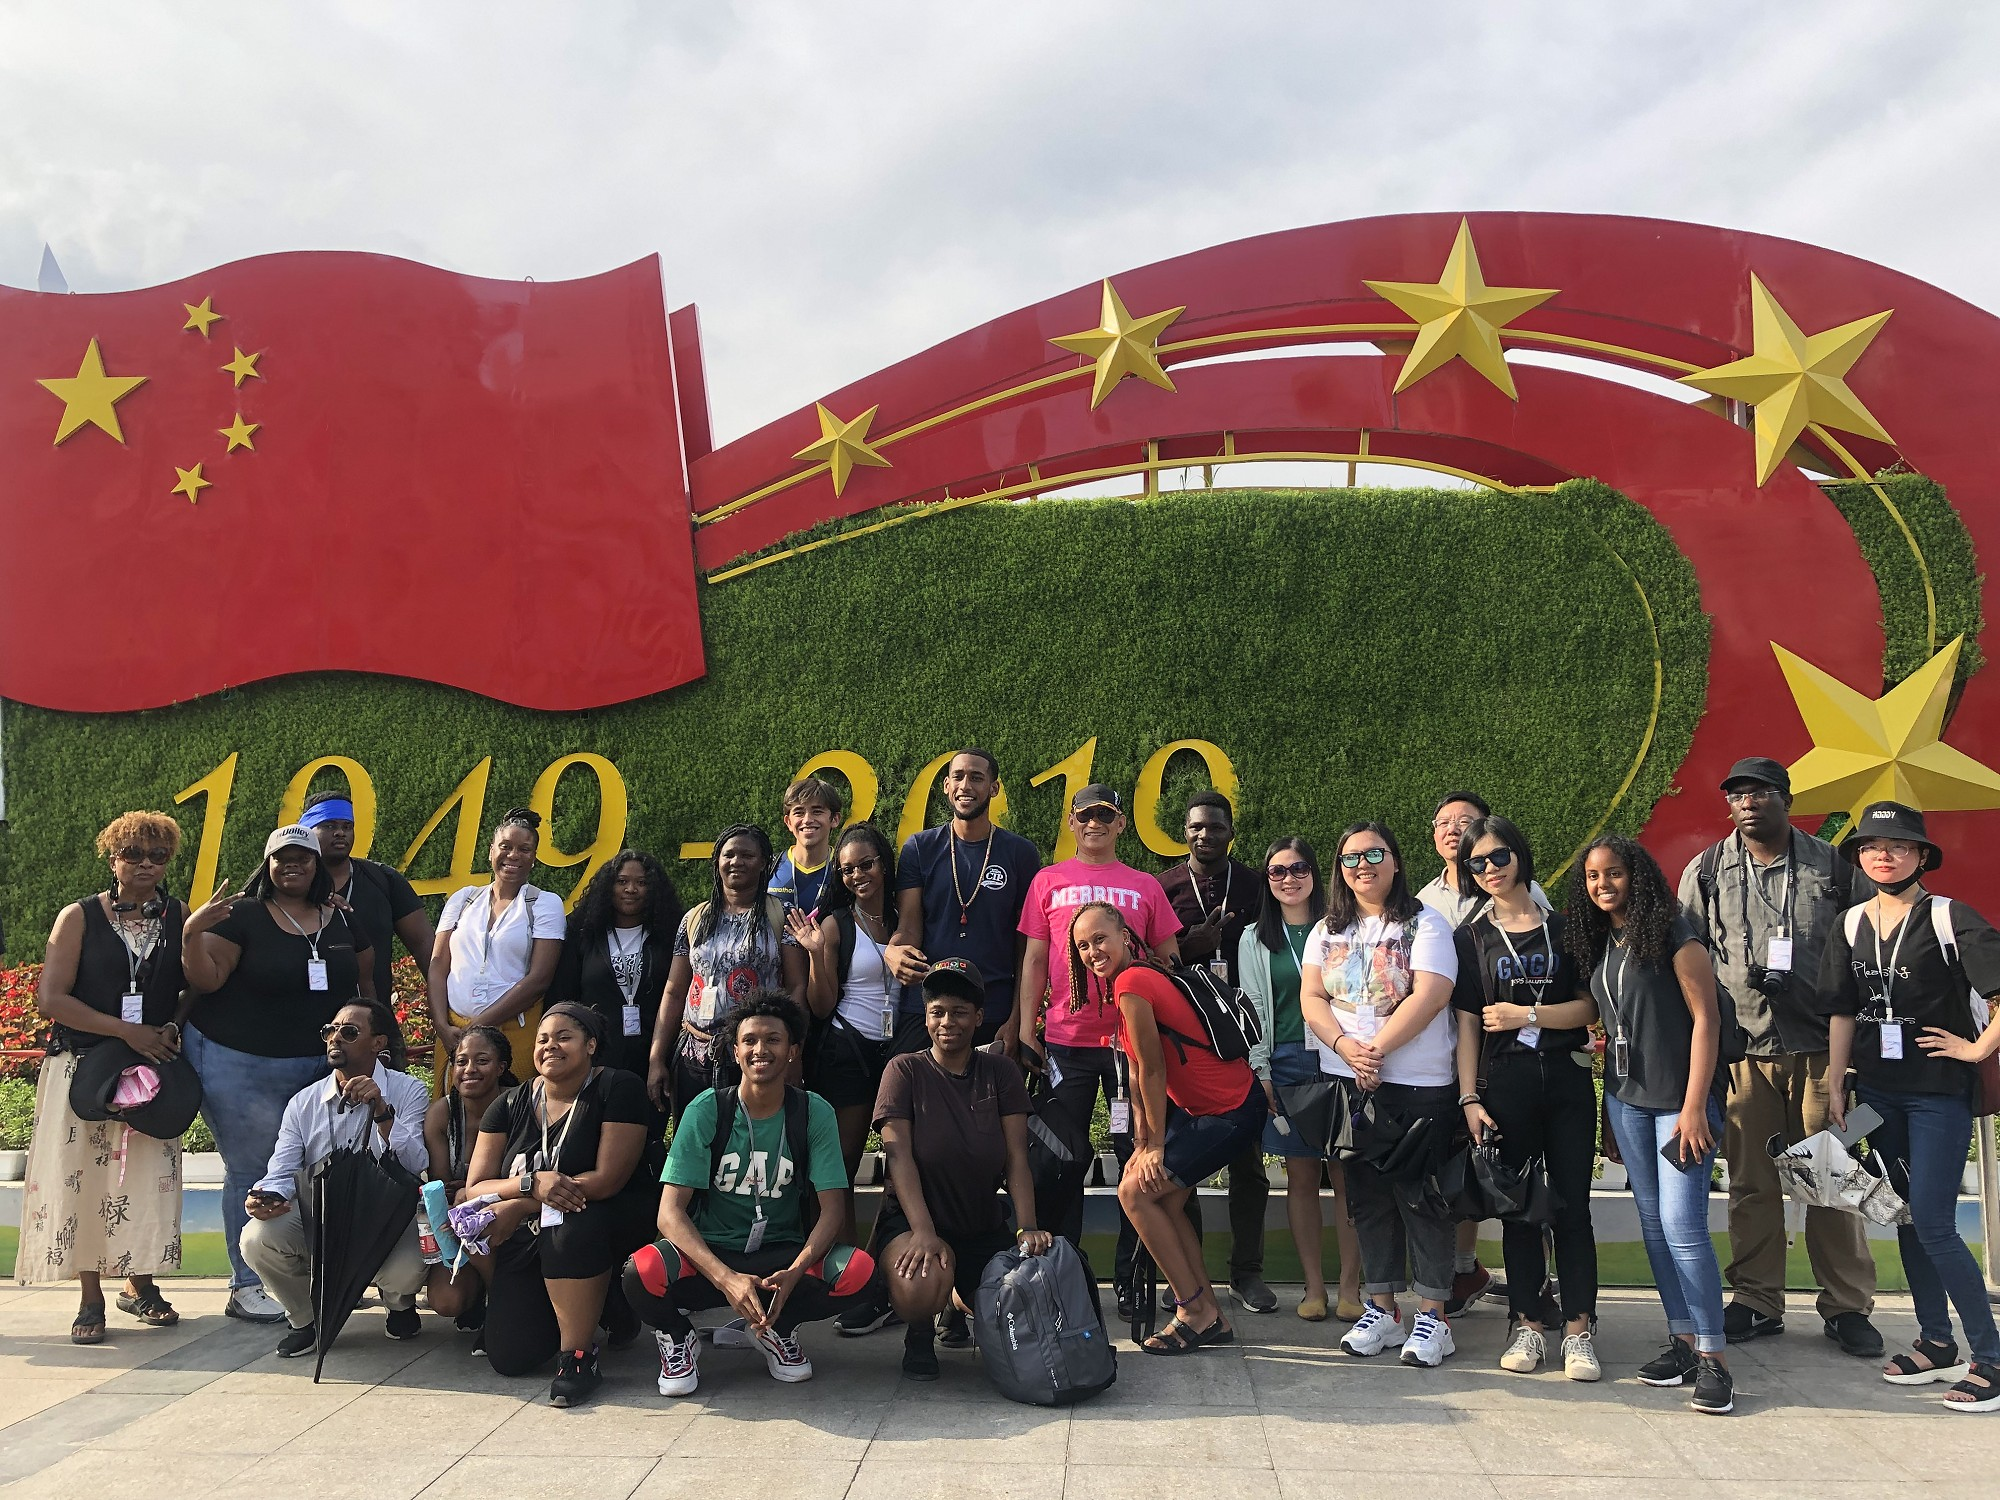 Peralta Delegation and student volunteers from Lanzhou University at Zhongshan Bridge